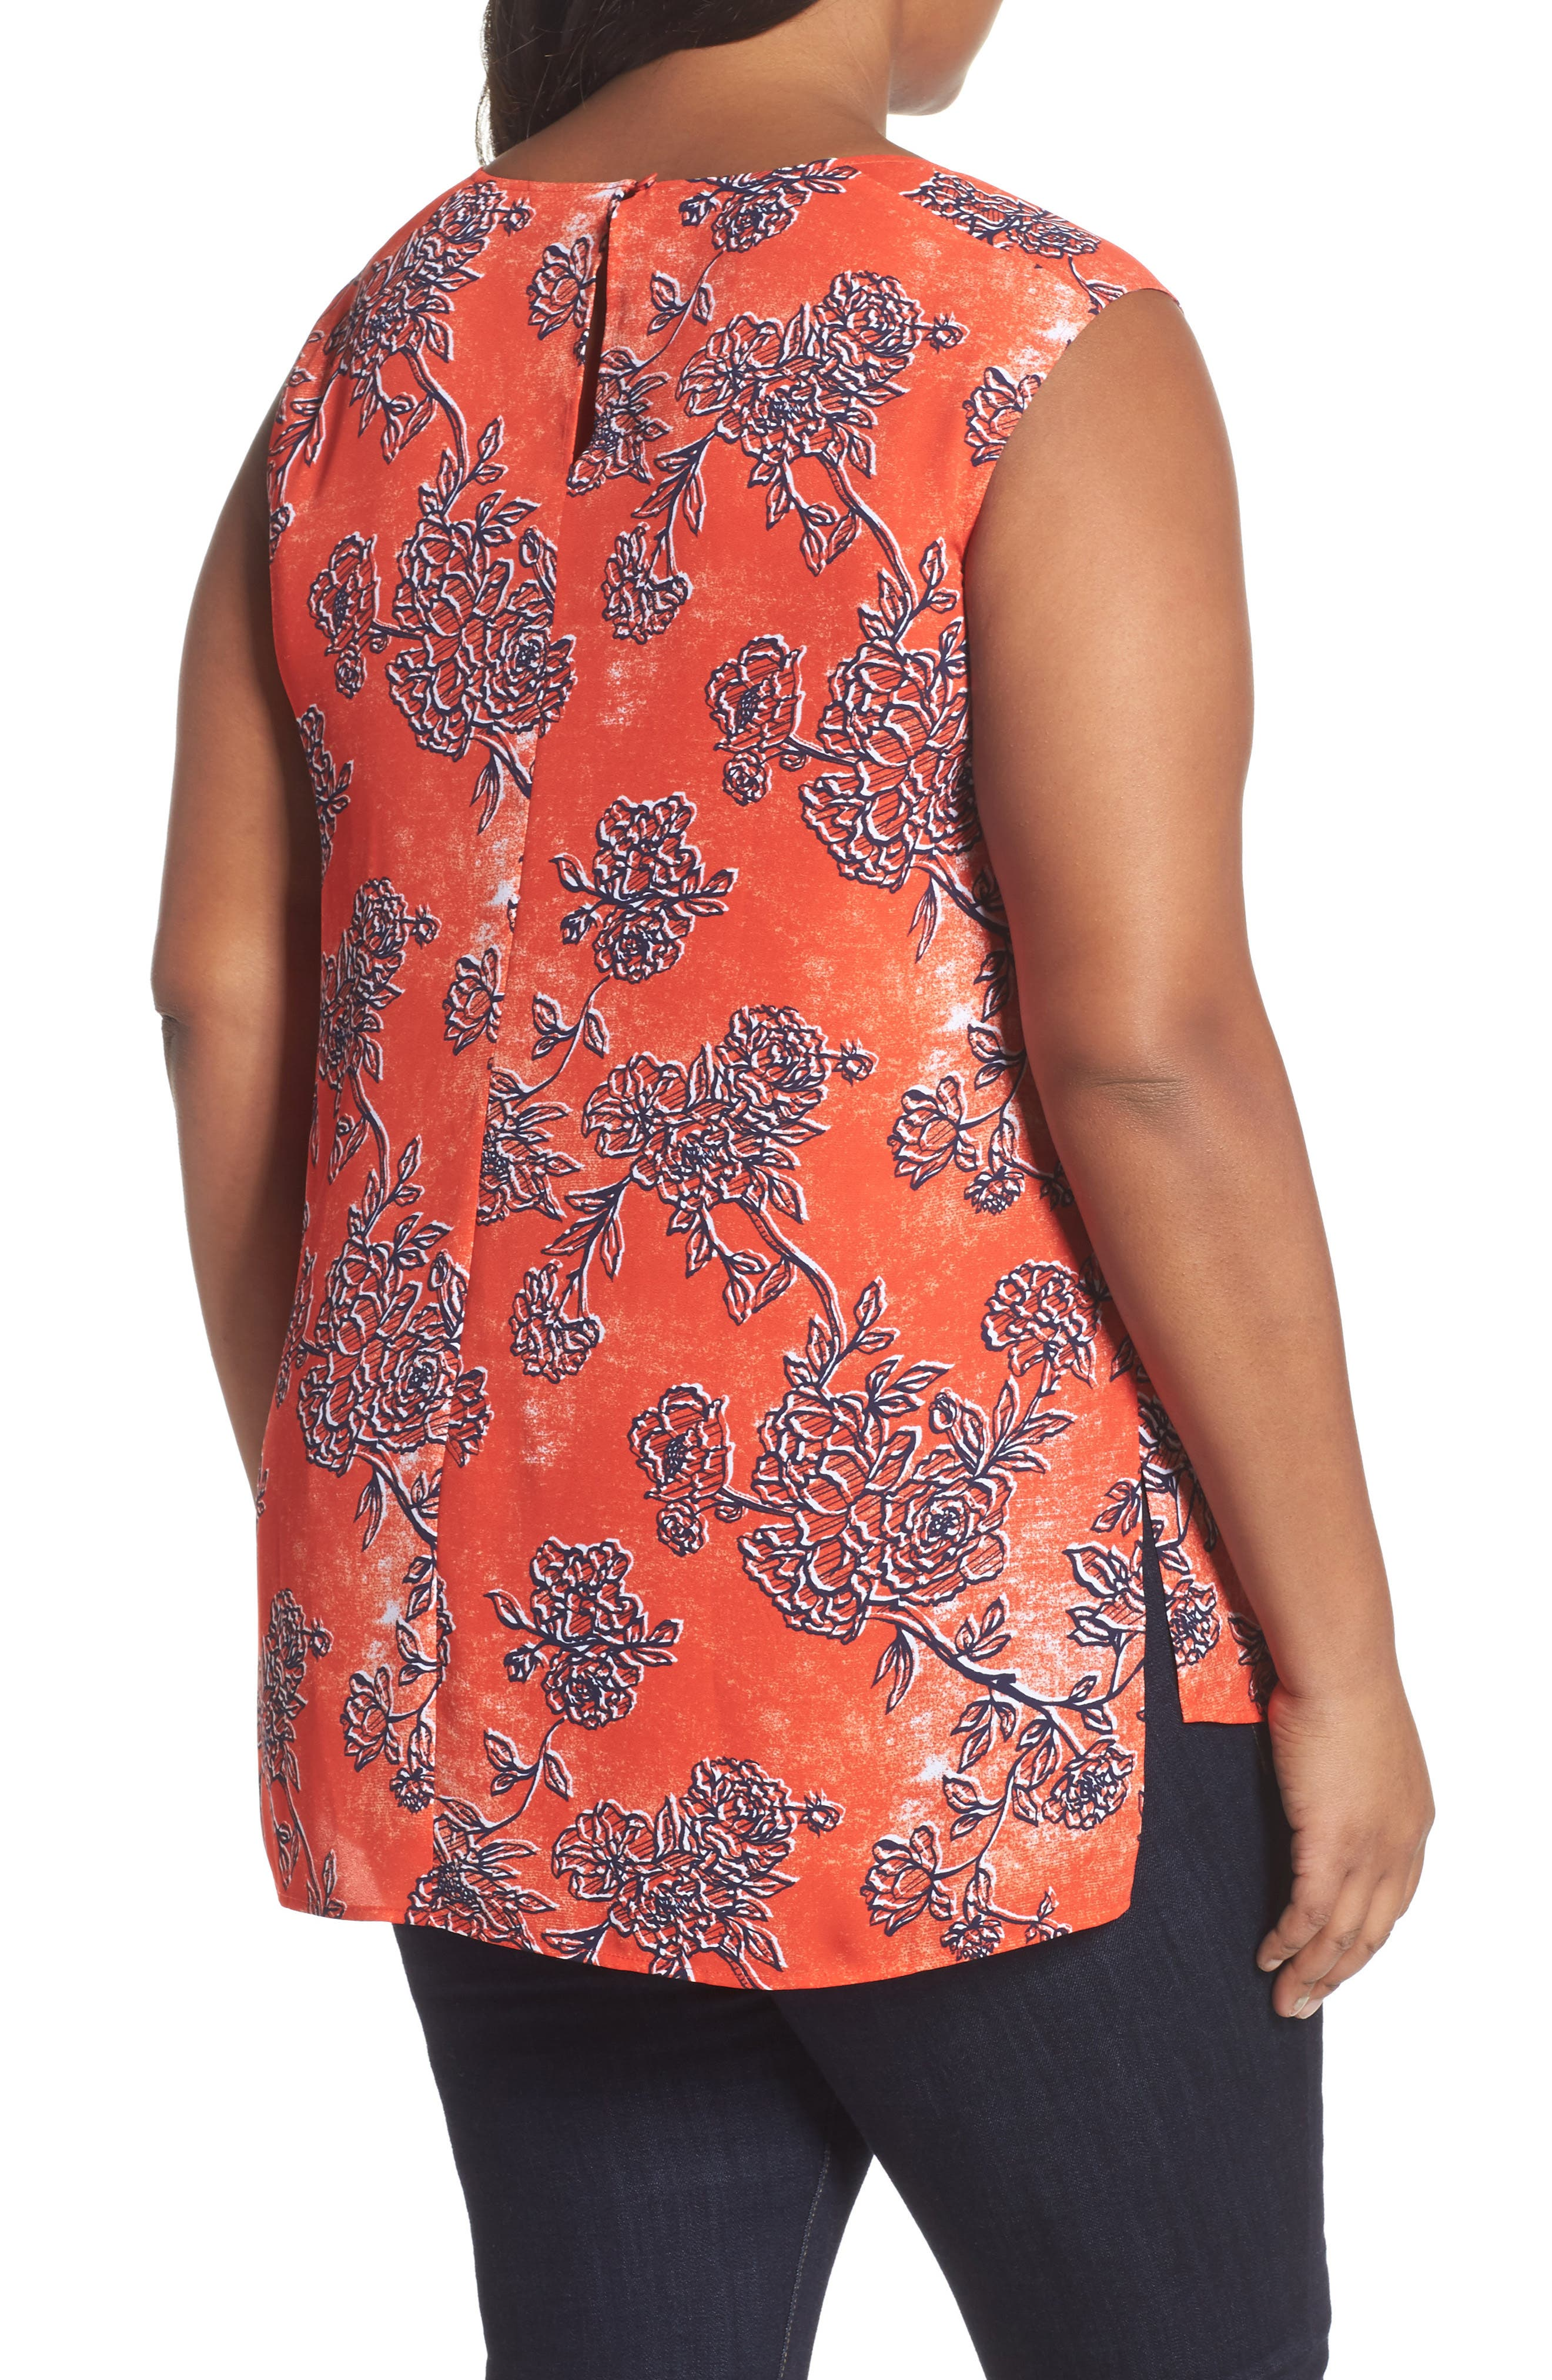 Pintuck Tank,                             Alternate thumbnail 2, color,                             Red Fiery Floral Print